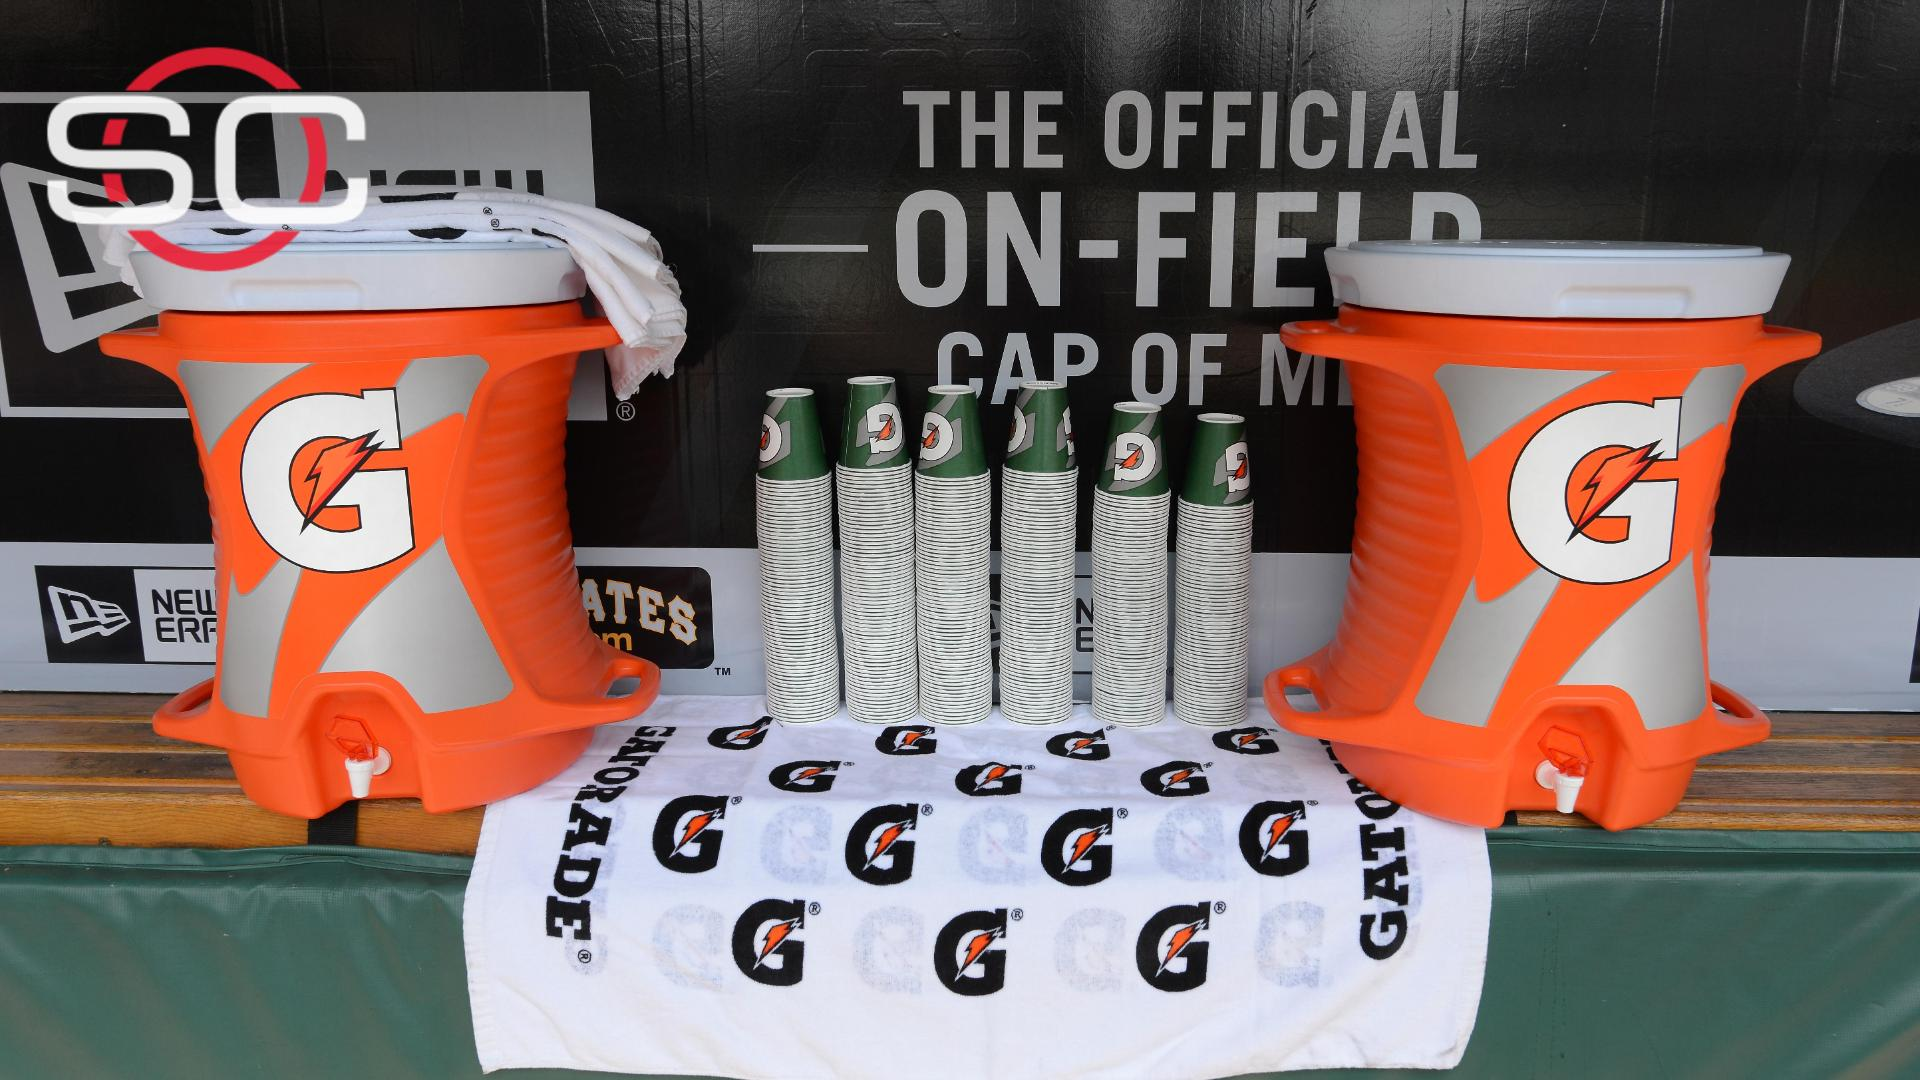 http://a.espncdn.com/media/motion/2015/1002/dm_151001_misc_gatorade_royalties165/dm_151001_misc_gatorade_royalties165.jpg